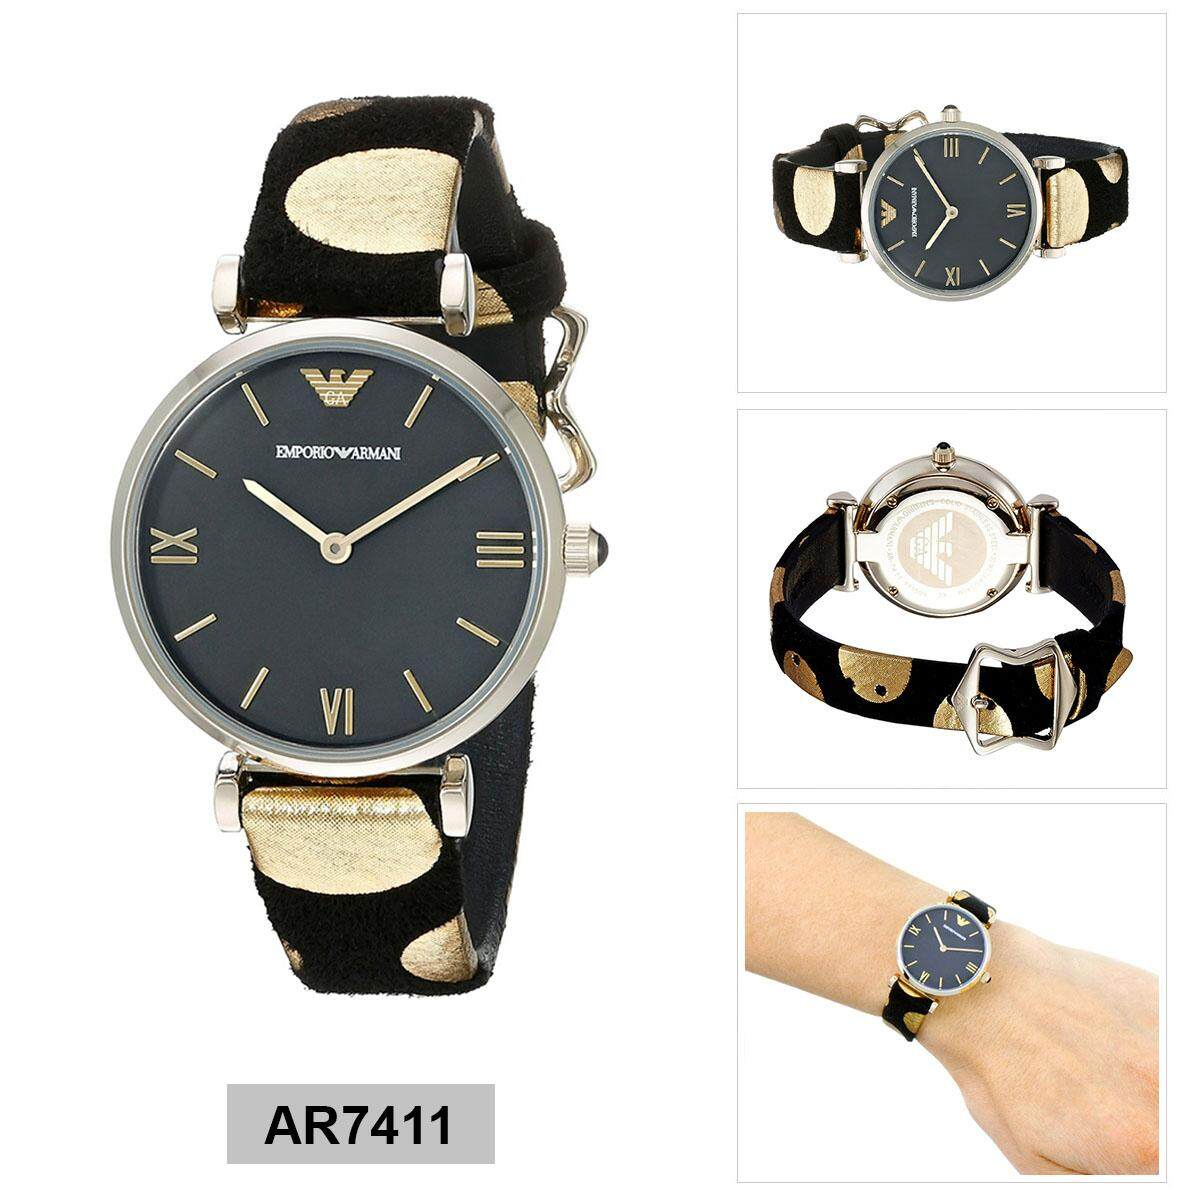 be11eb2a Wristwatch For Women for sale - Casual Watches For Women online ...